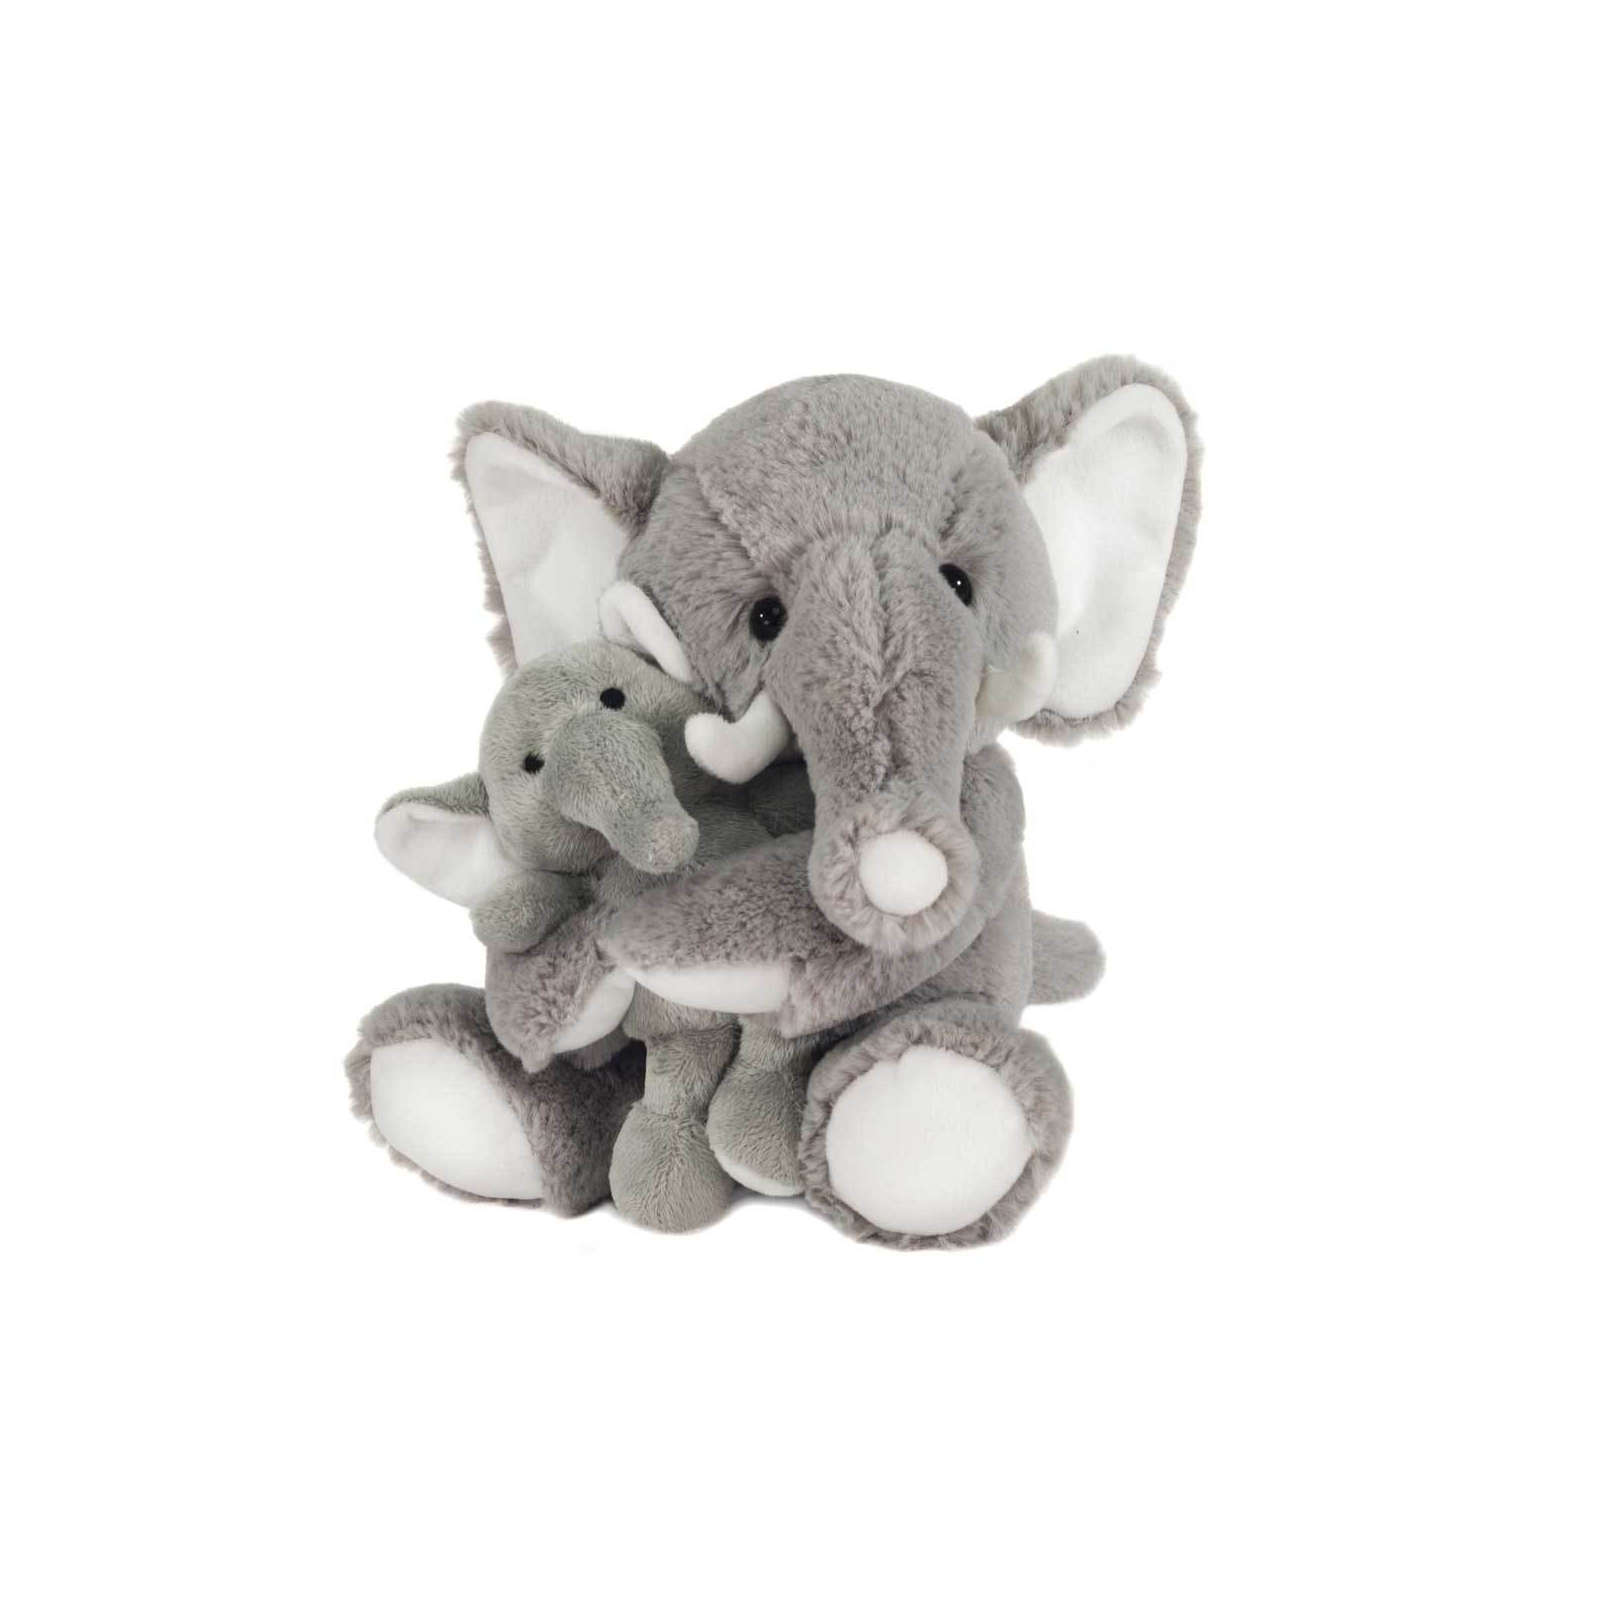 MOM & BABY PLUSH ELEPHANTS